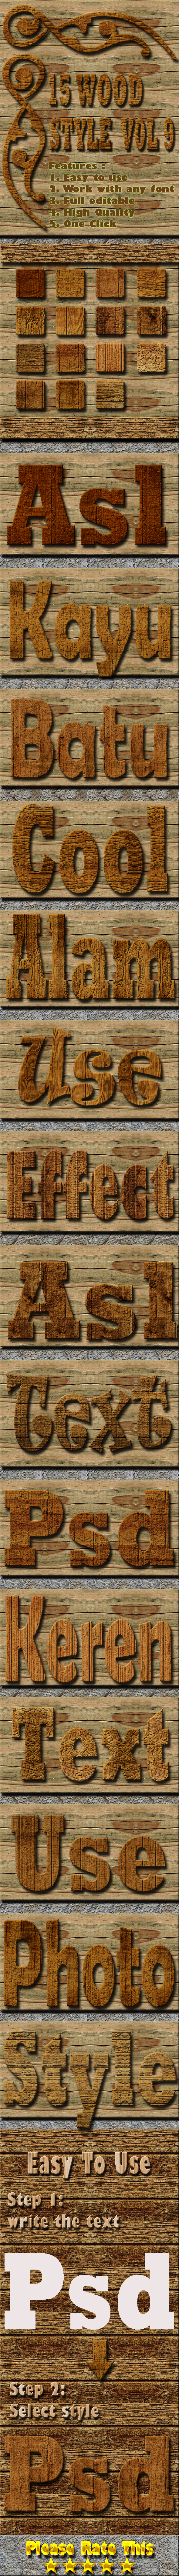 15 Wood Text Effect Style Vol 9 - Styles Photoshop